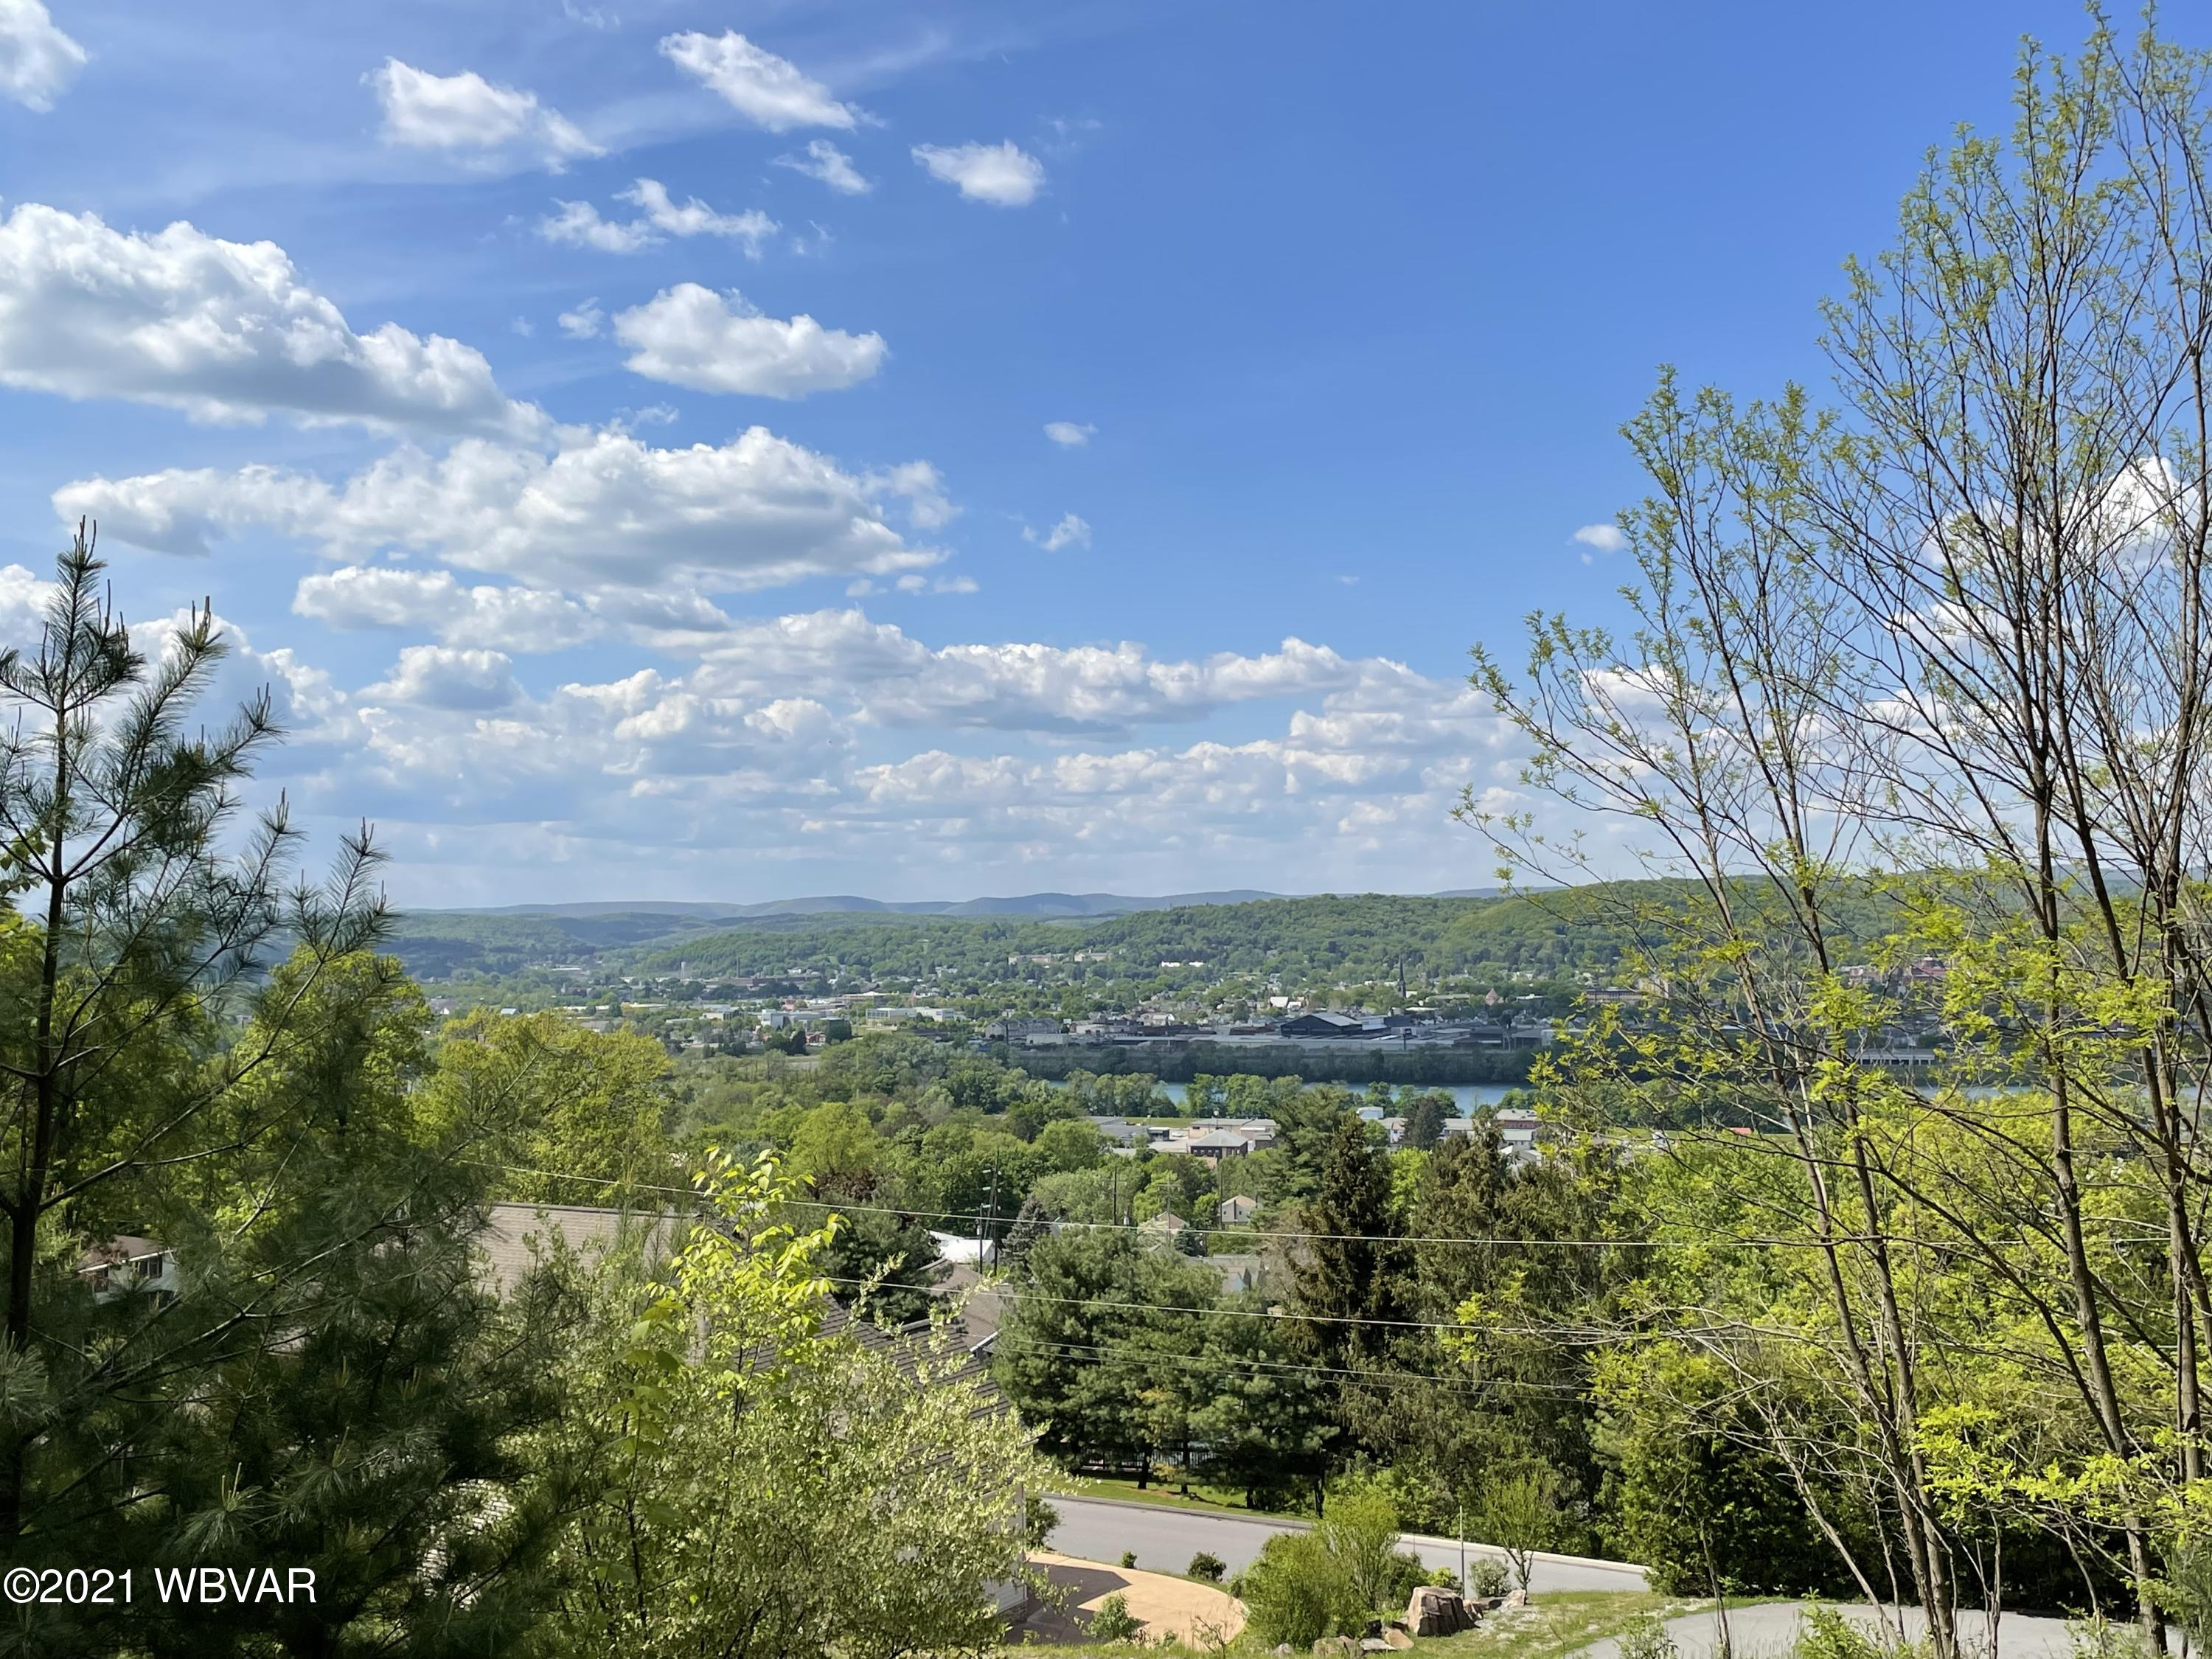 0 EIGHTH AVENUE, S. Williamsport, PA 17702, ,Land,For sale,EIGHTH,WB-92547